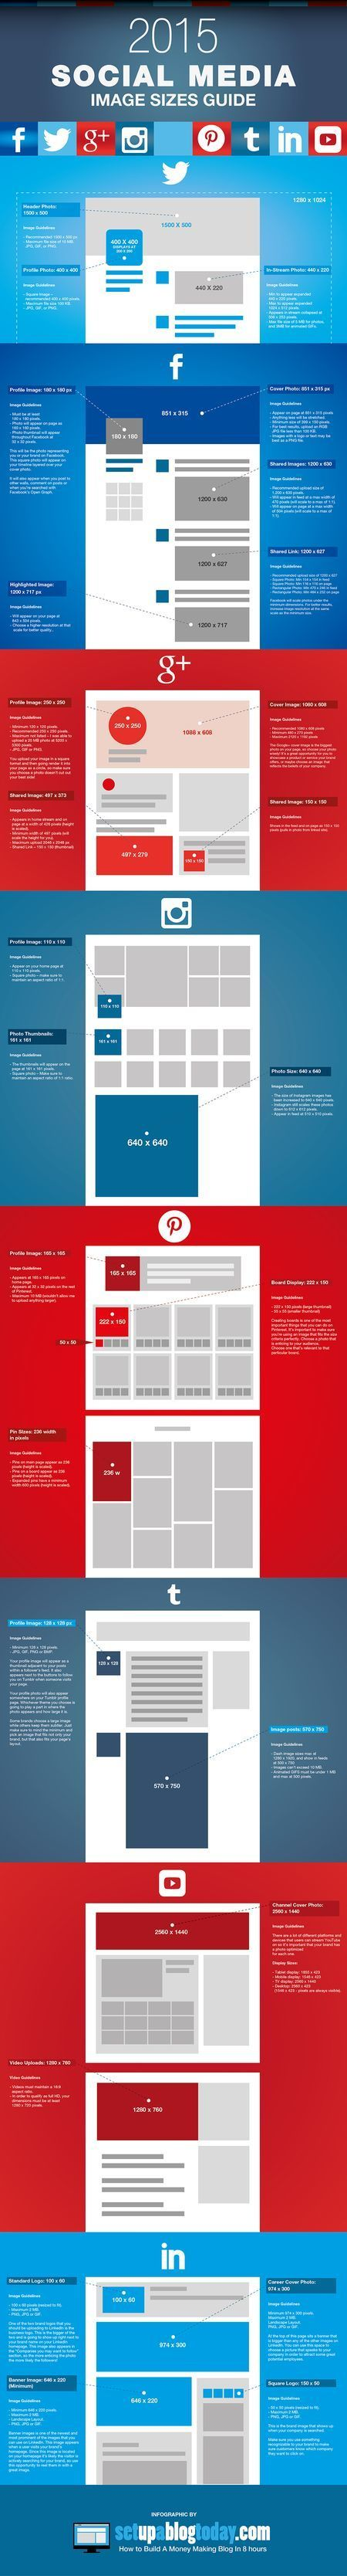 Social Media Image Size Chart 2015  #INFOGRAPHIC | MarketingHits | Scoop.it